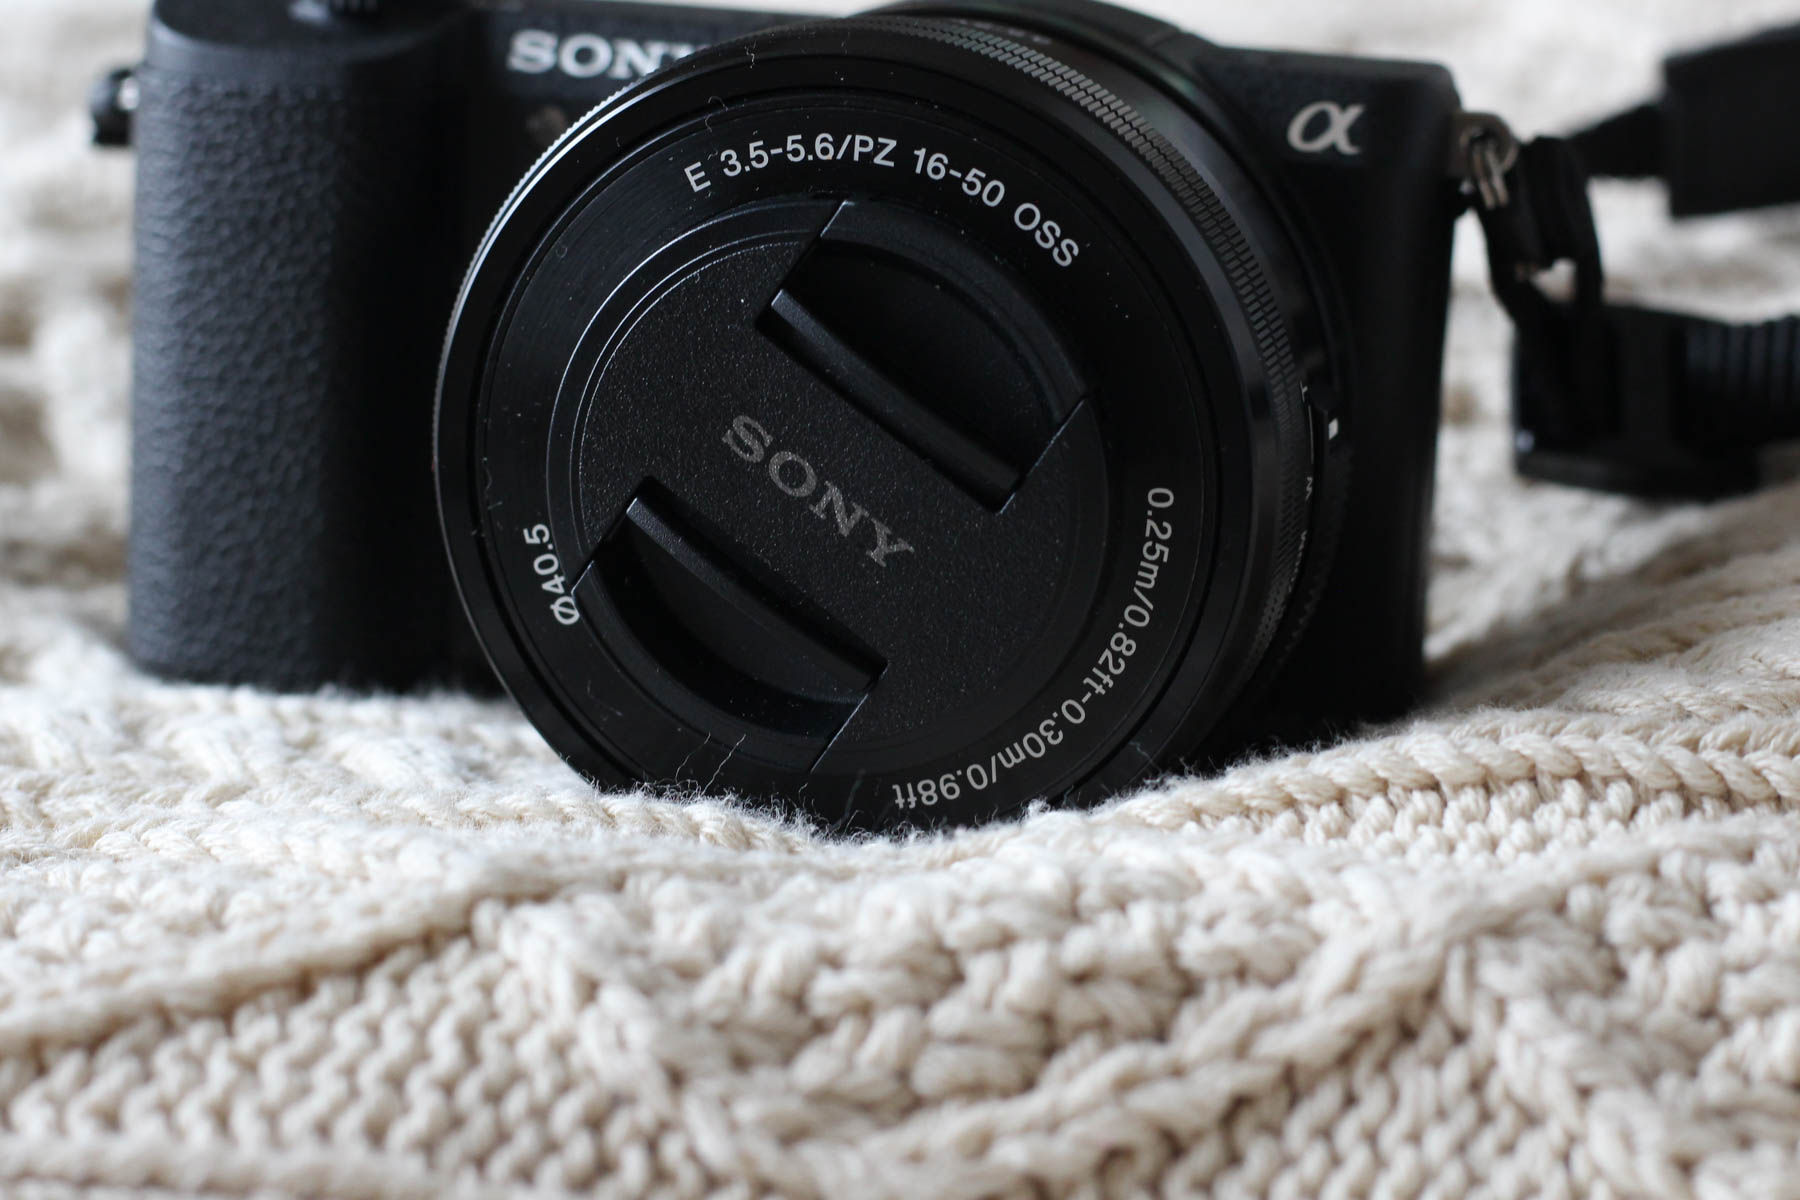 Sony a5100 camera review